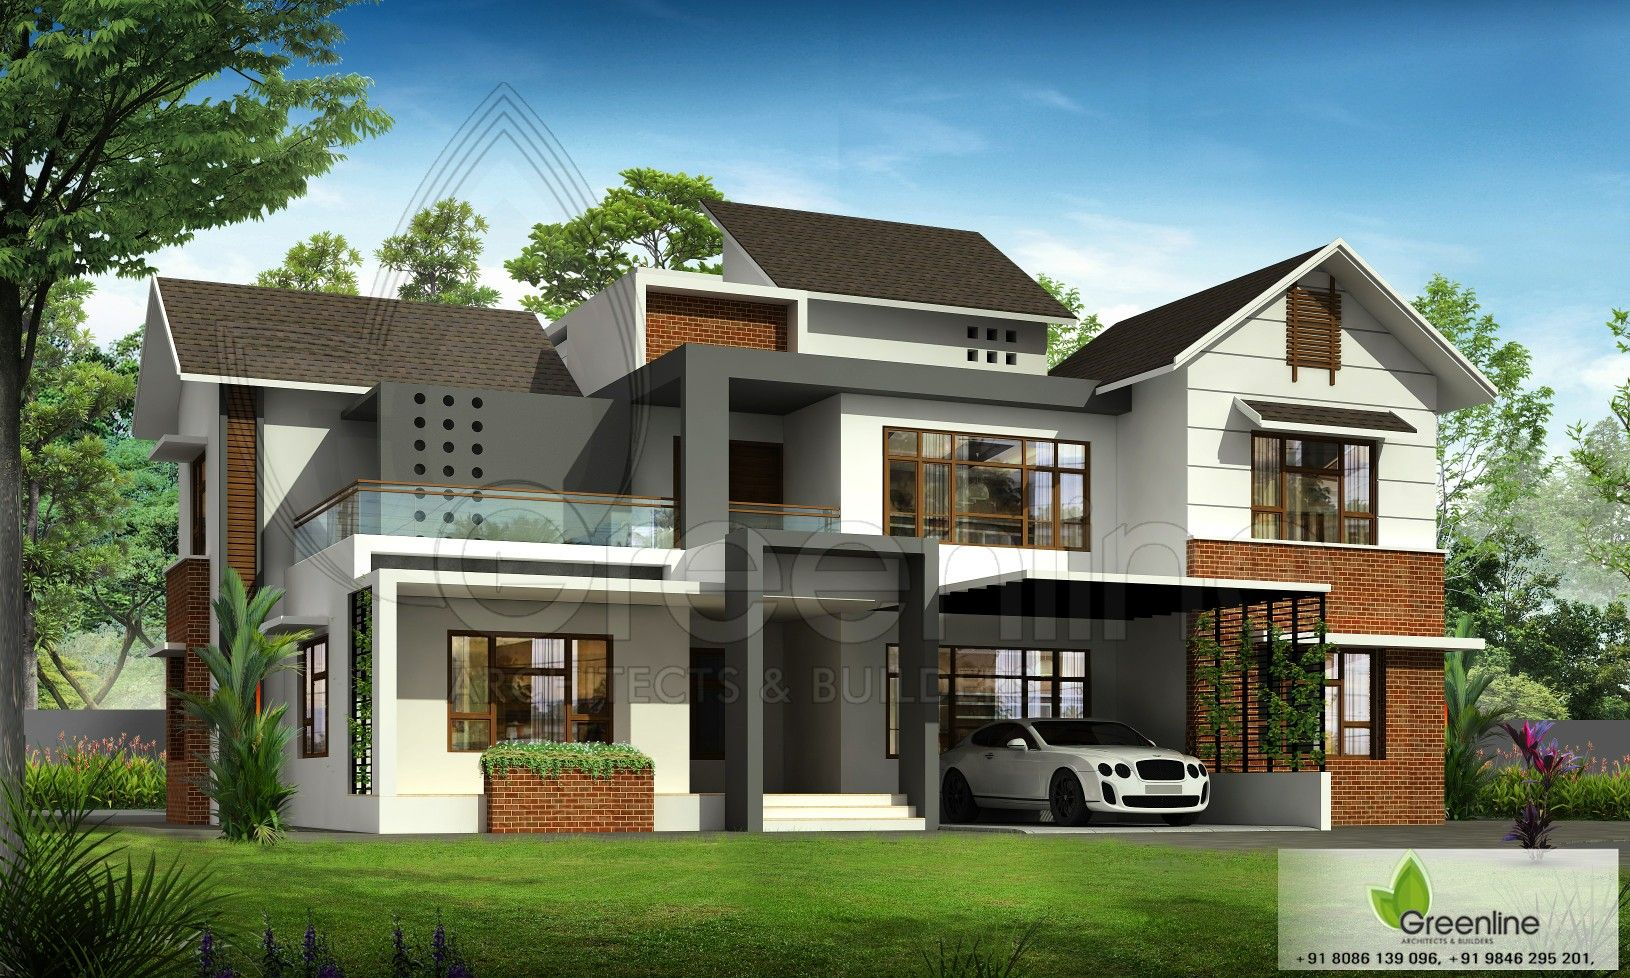 Modern Mixed Roof House Design Greenlinearchitects Modernarchitect Modernhomes Awasomeview Kerala House Design Architecture House Roof Architecture